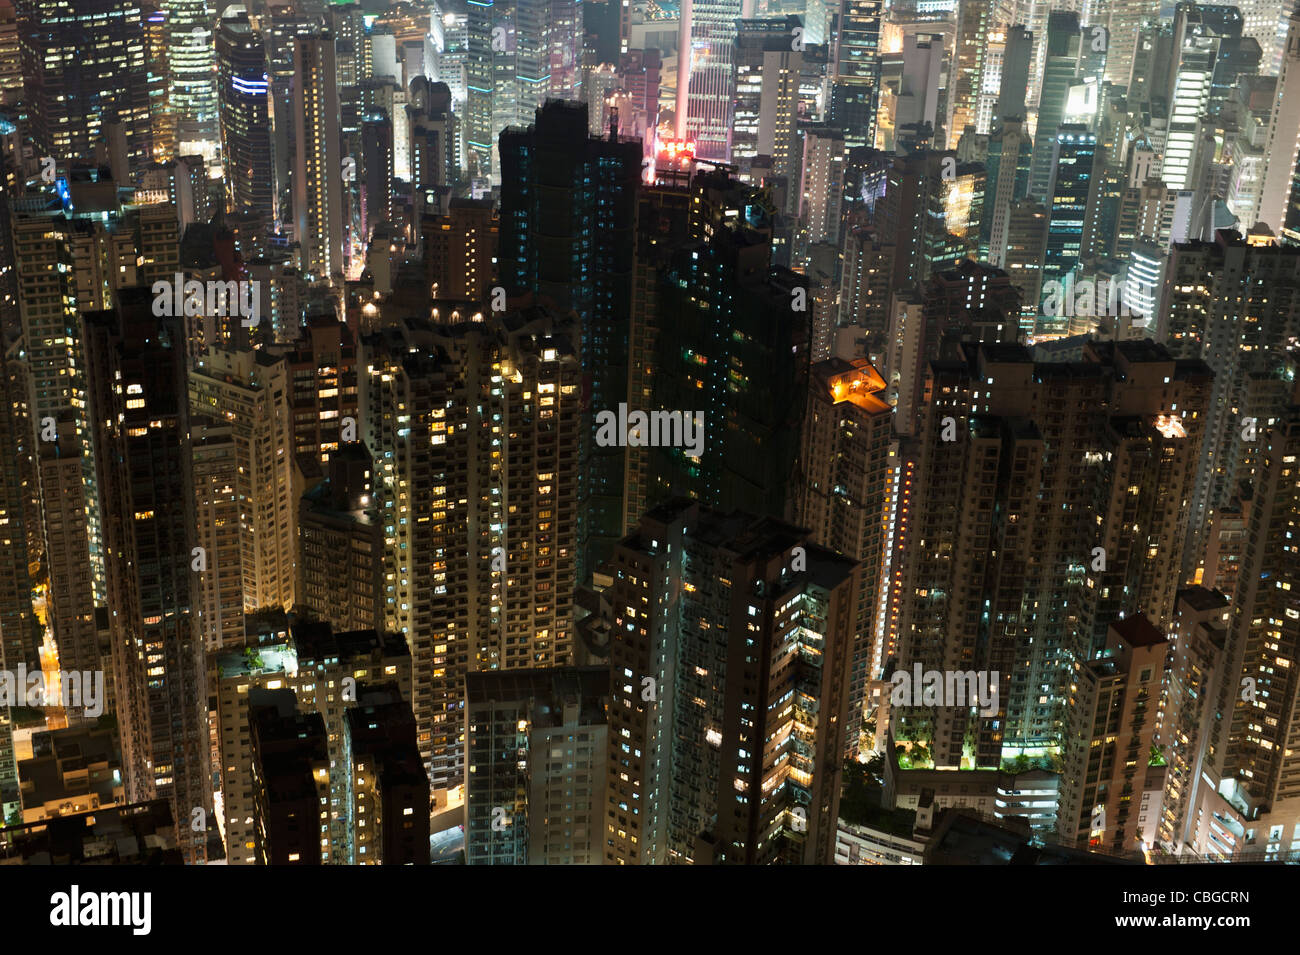 China, Honk Kong, Cityscape at night - Stock Image